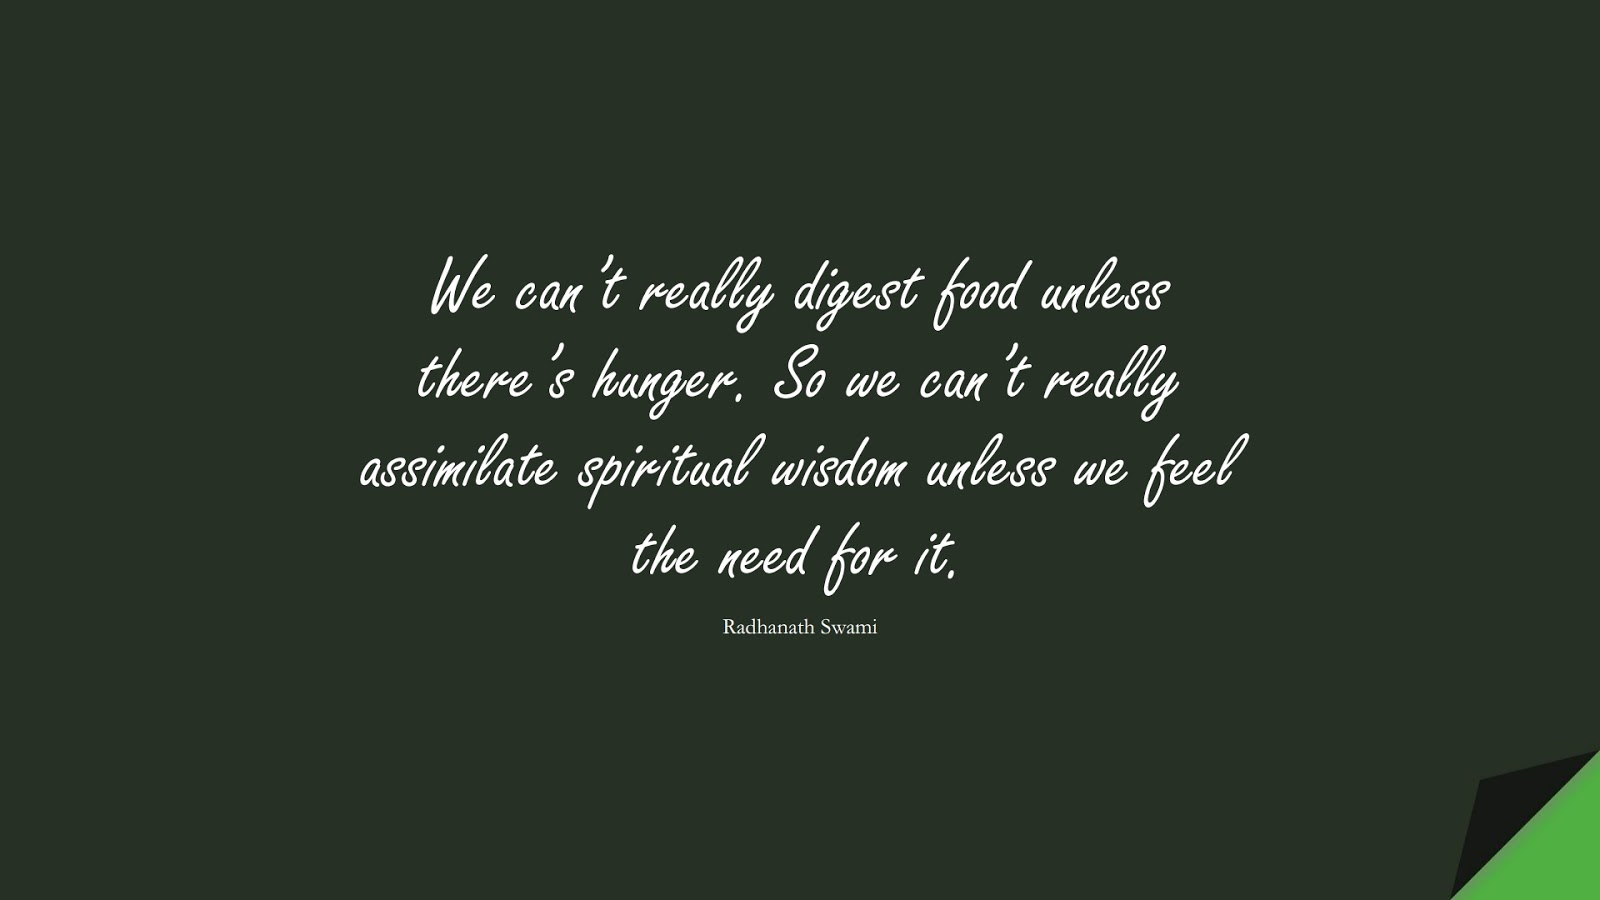 We can't really digest food unless there's hunger. So we can't really assimilate spiritual wisdom unless we feel the need for it. (Radhanath Swami);  #WordsofWisdom